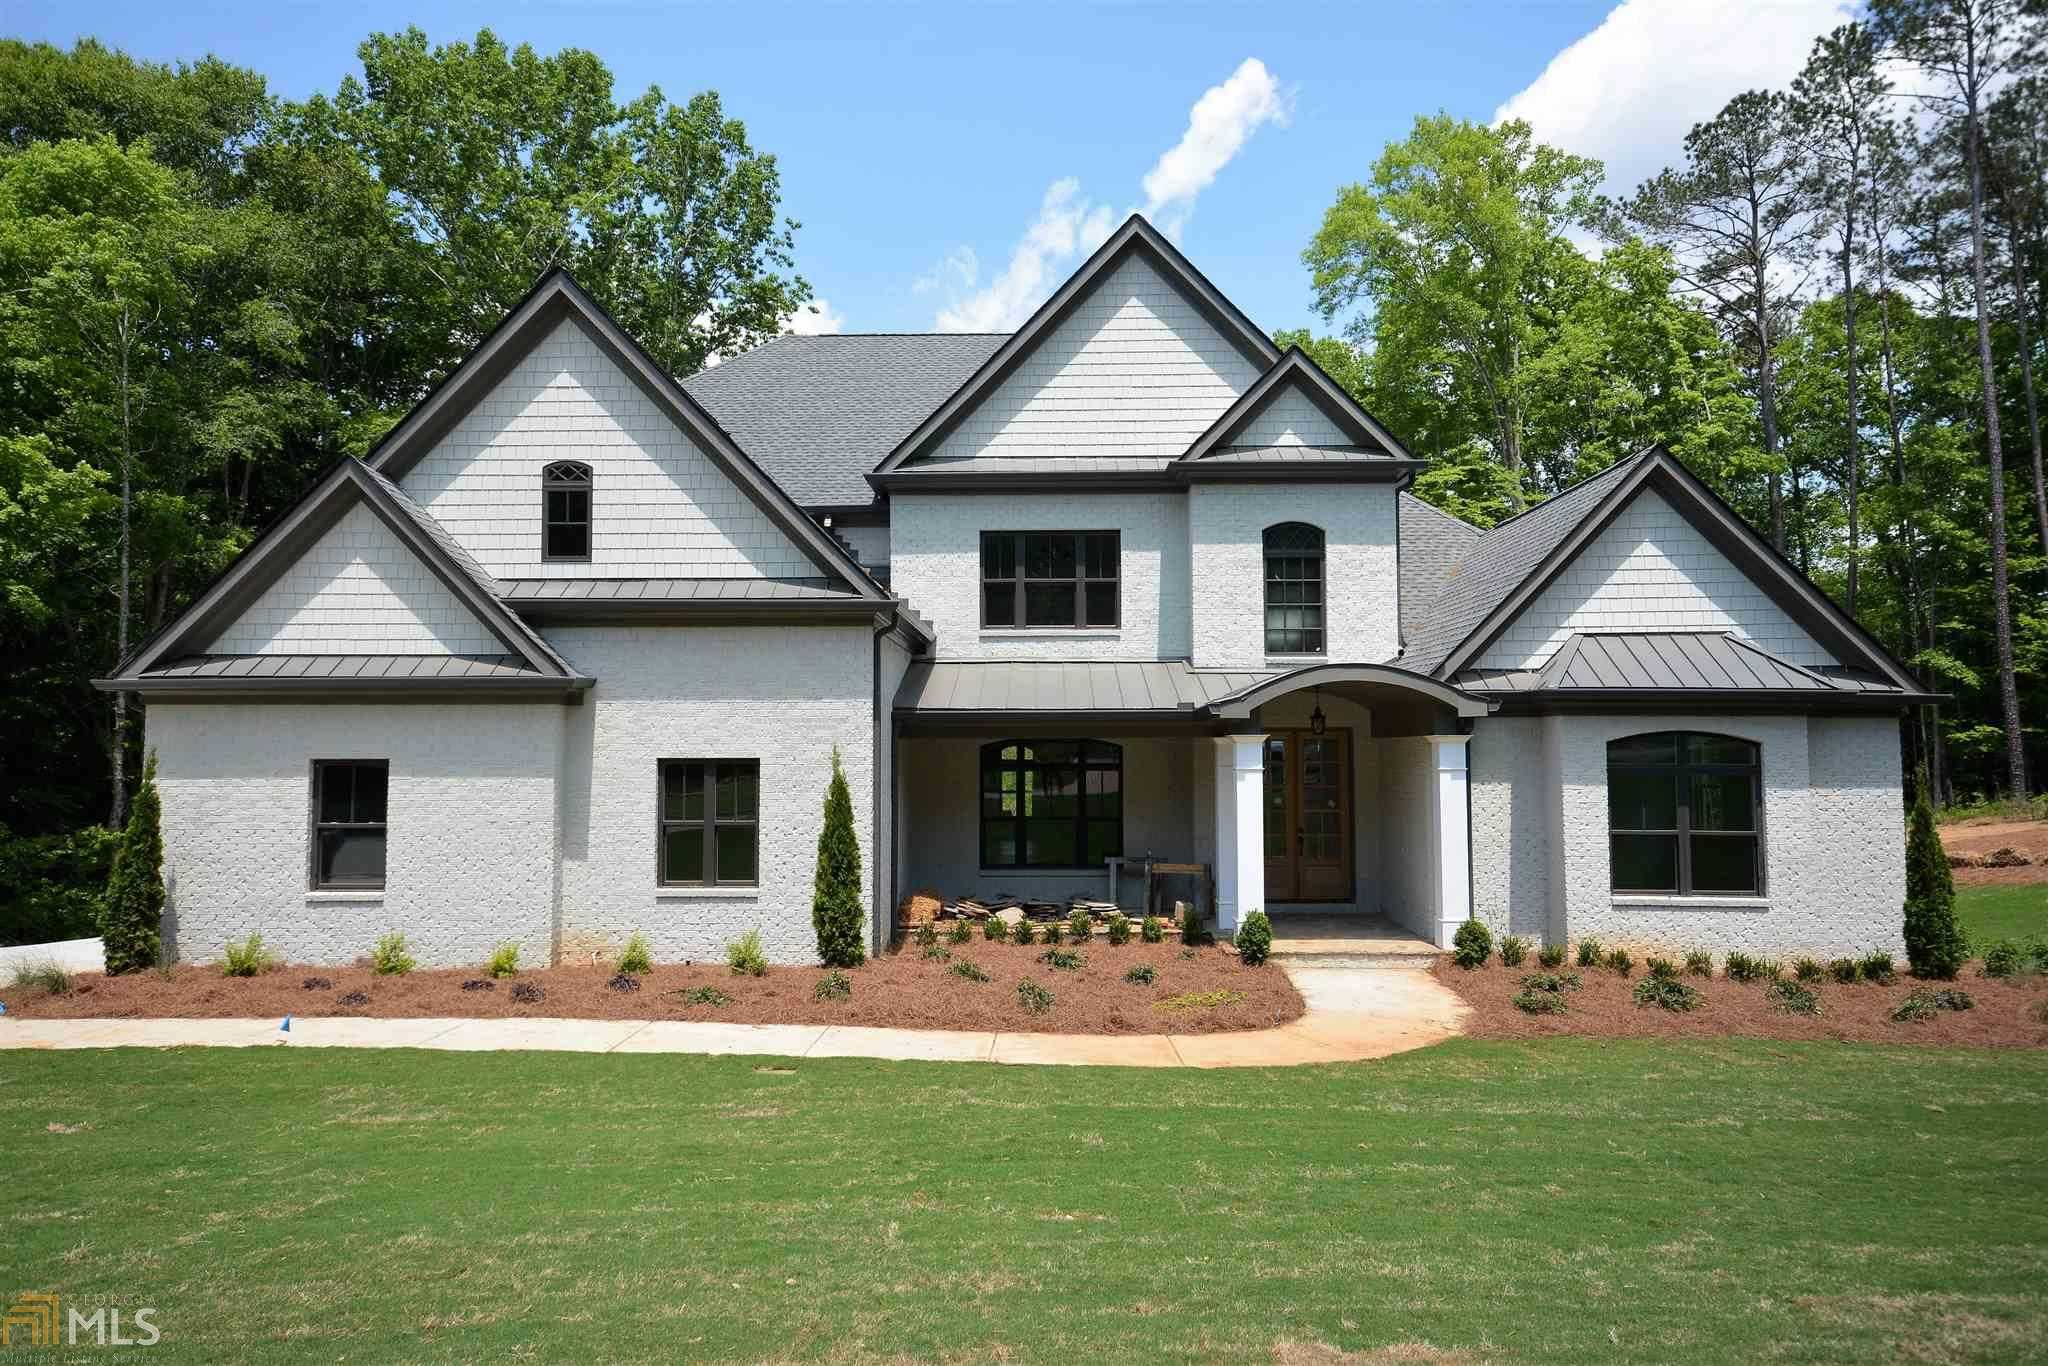 $899,000 - 5Br/6Ba -  for Sale in Freys Farm, Kennesaw